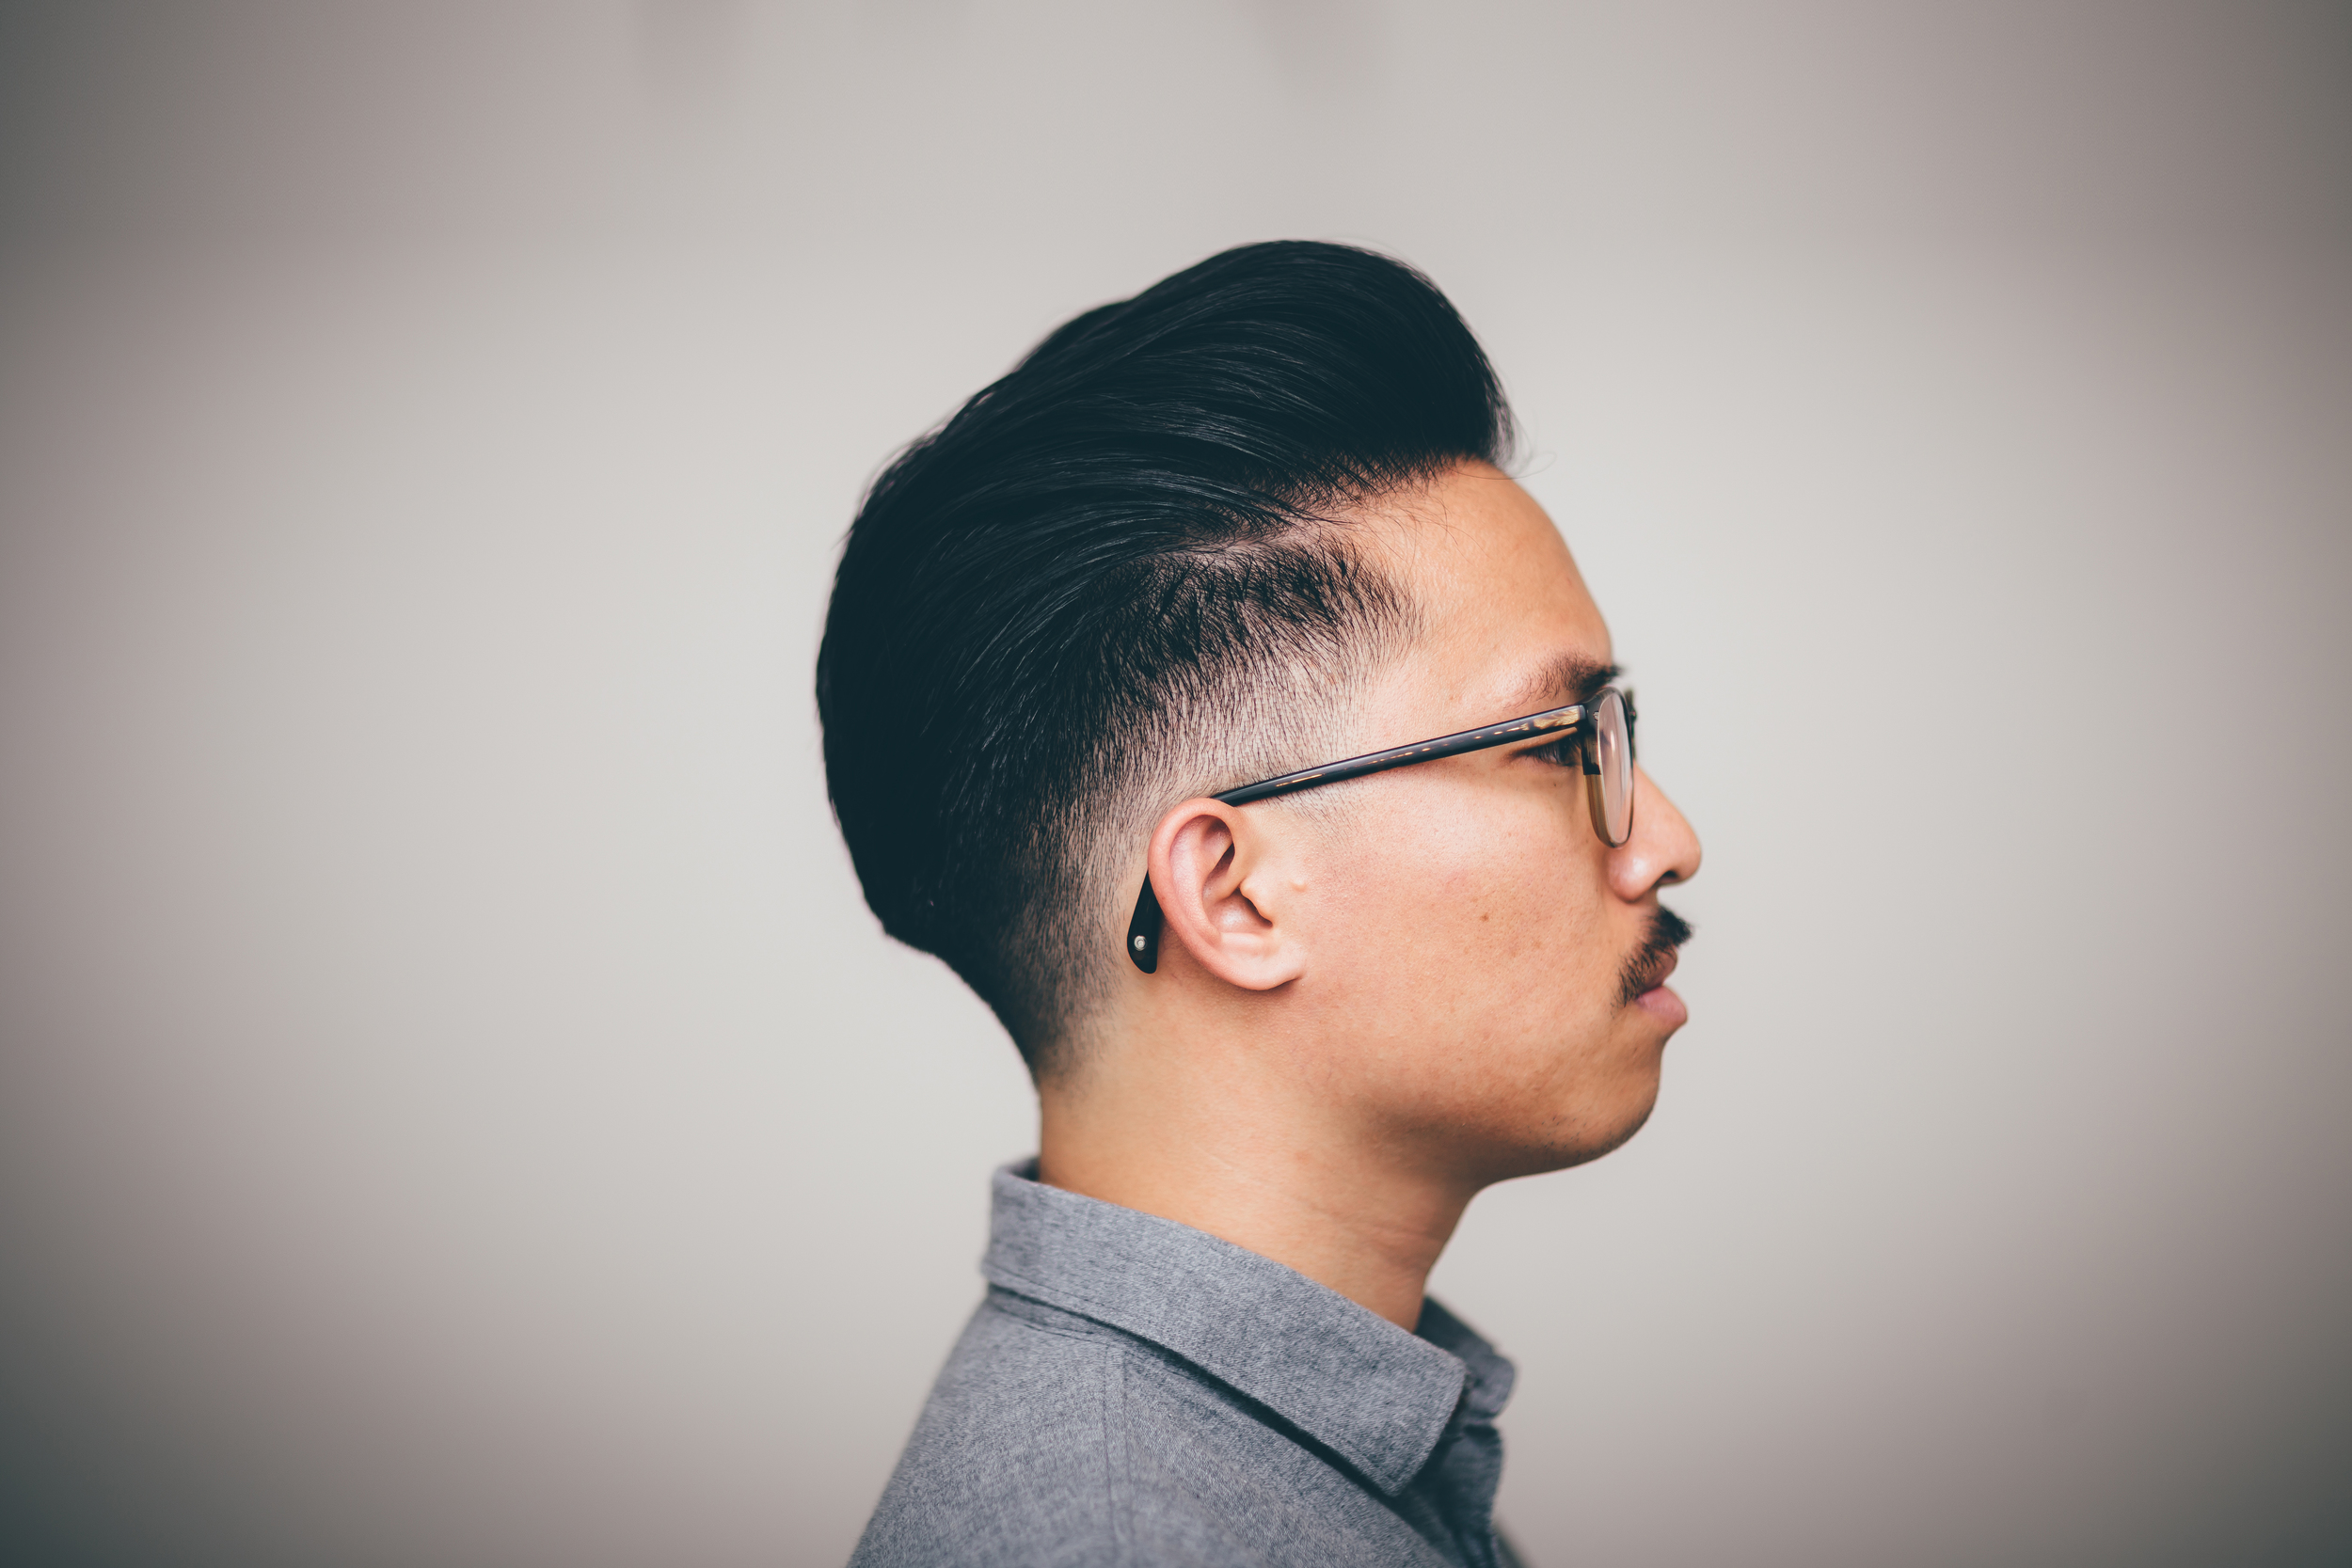 The Pomp's New Haircut -- Low Drop Fade Pompadour